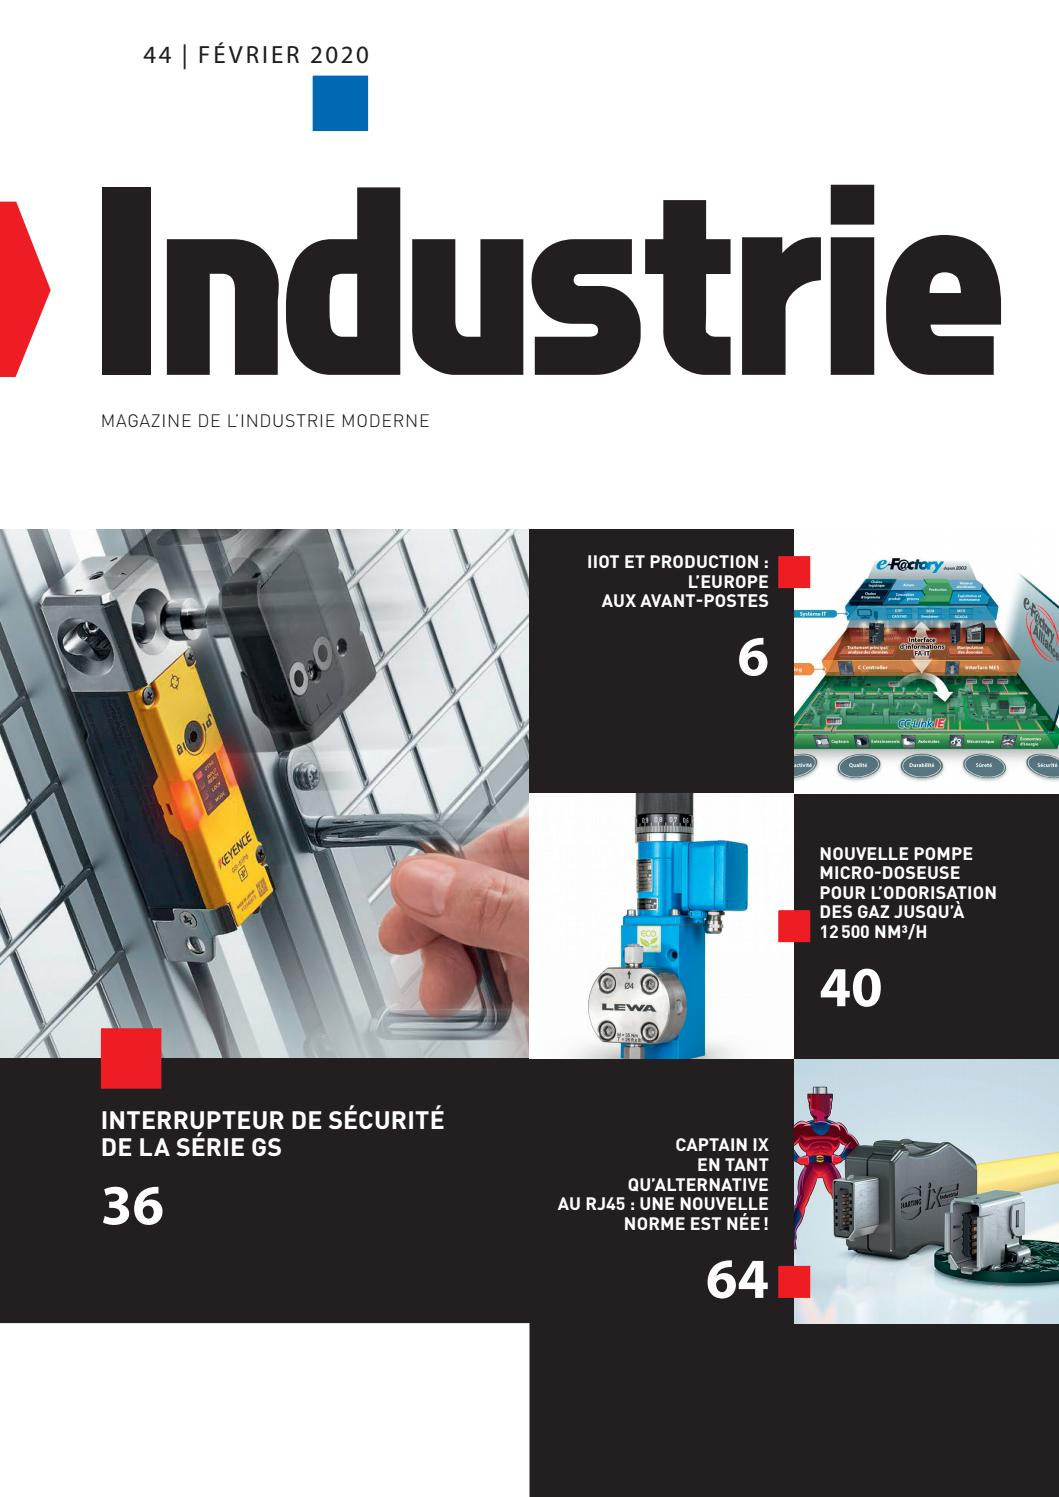 Boitier Electromagnetique Anti Humidite industrie | 44 - février 2020induportals media